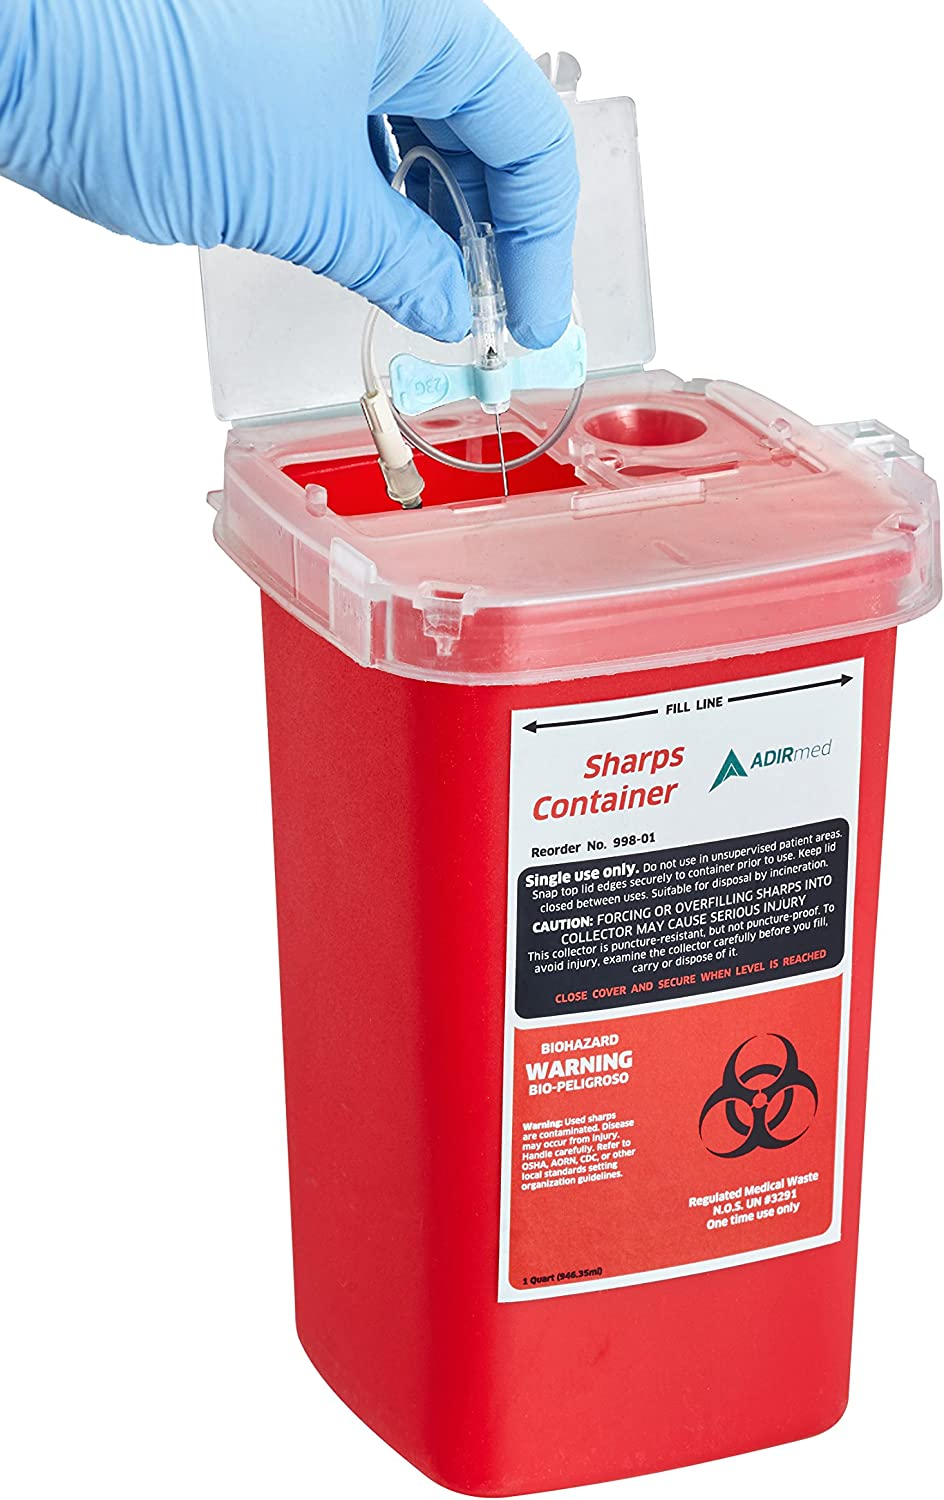 AdirMed Sharps & Needle Biohazard Disposal Container 1 Quart - 6 Pack: Health & Personal Care